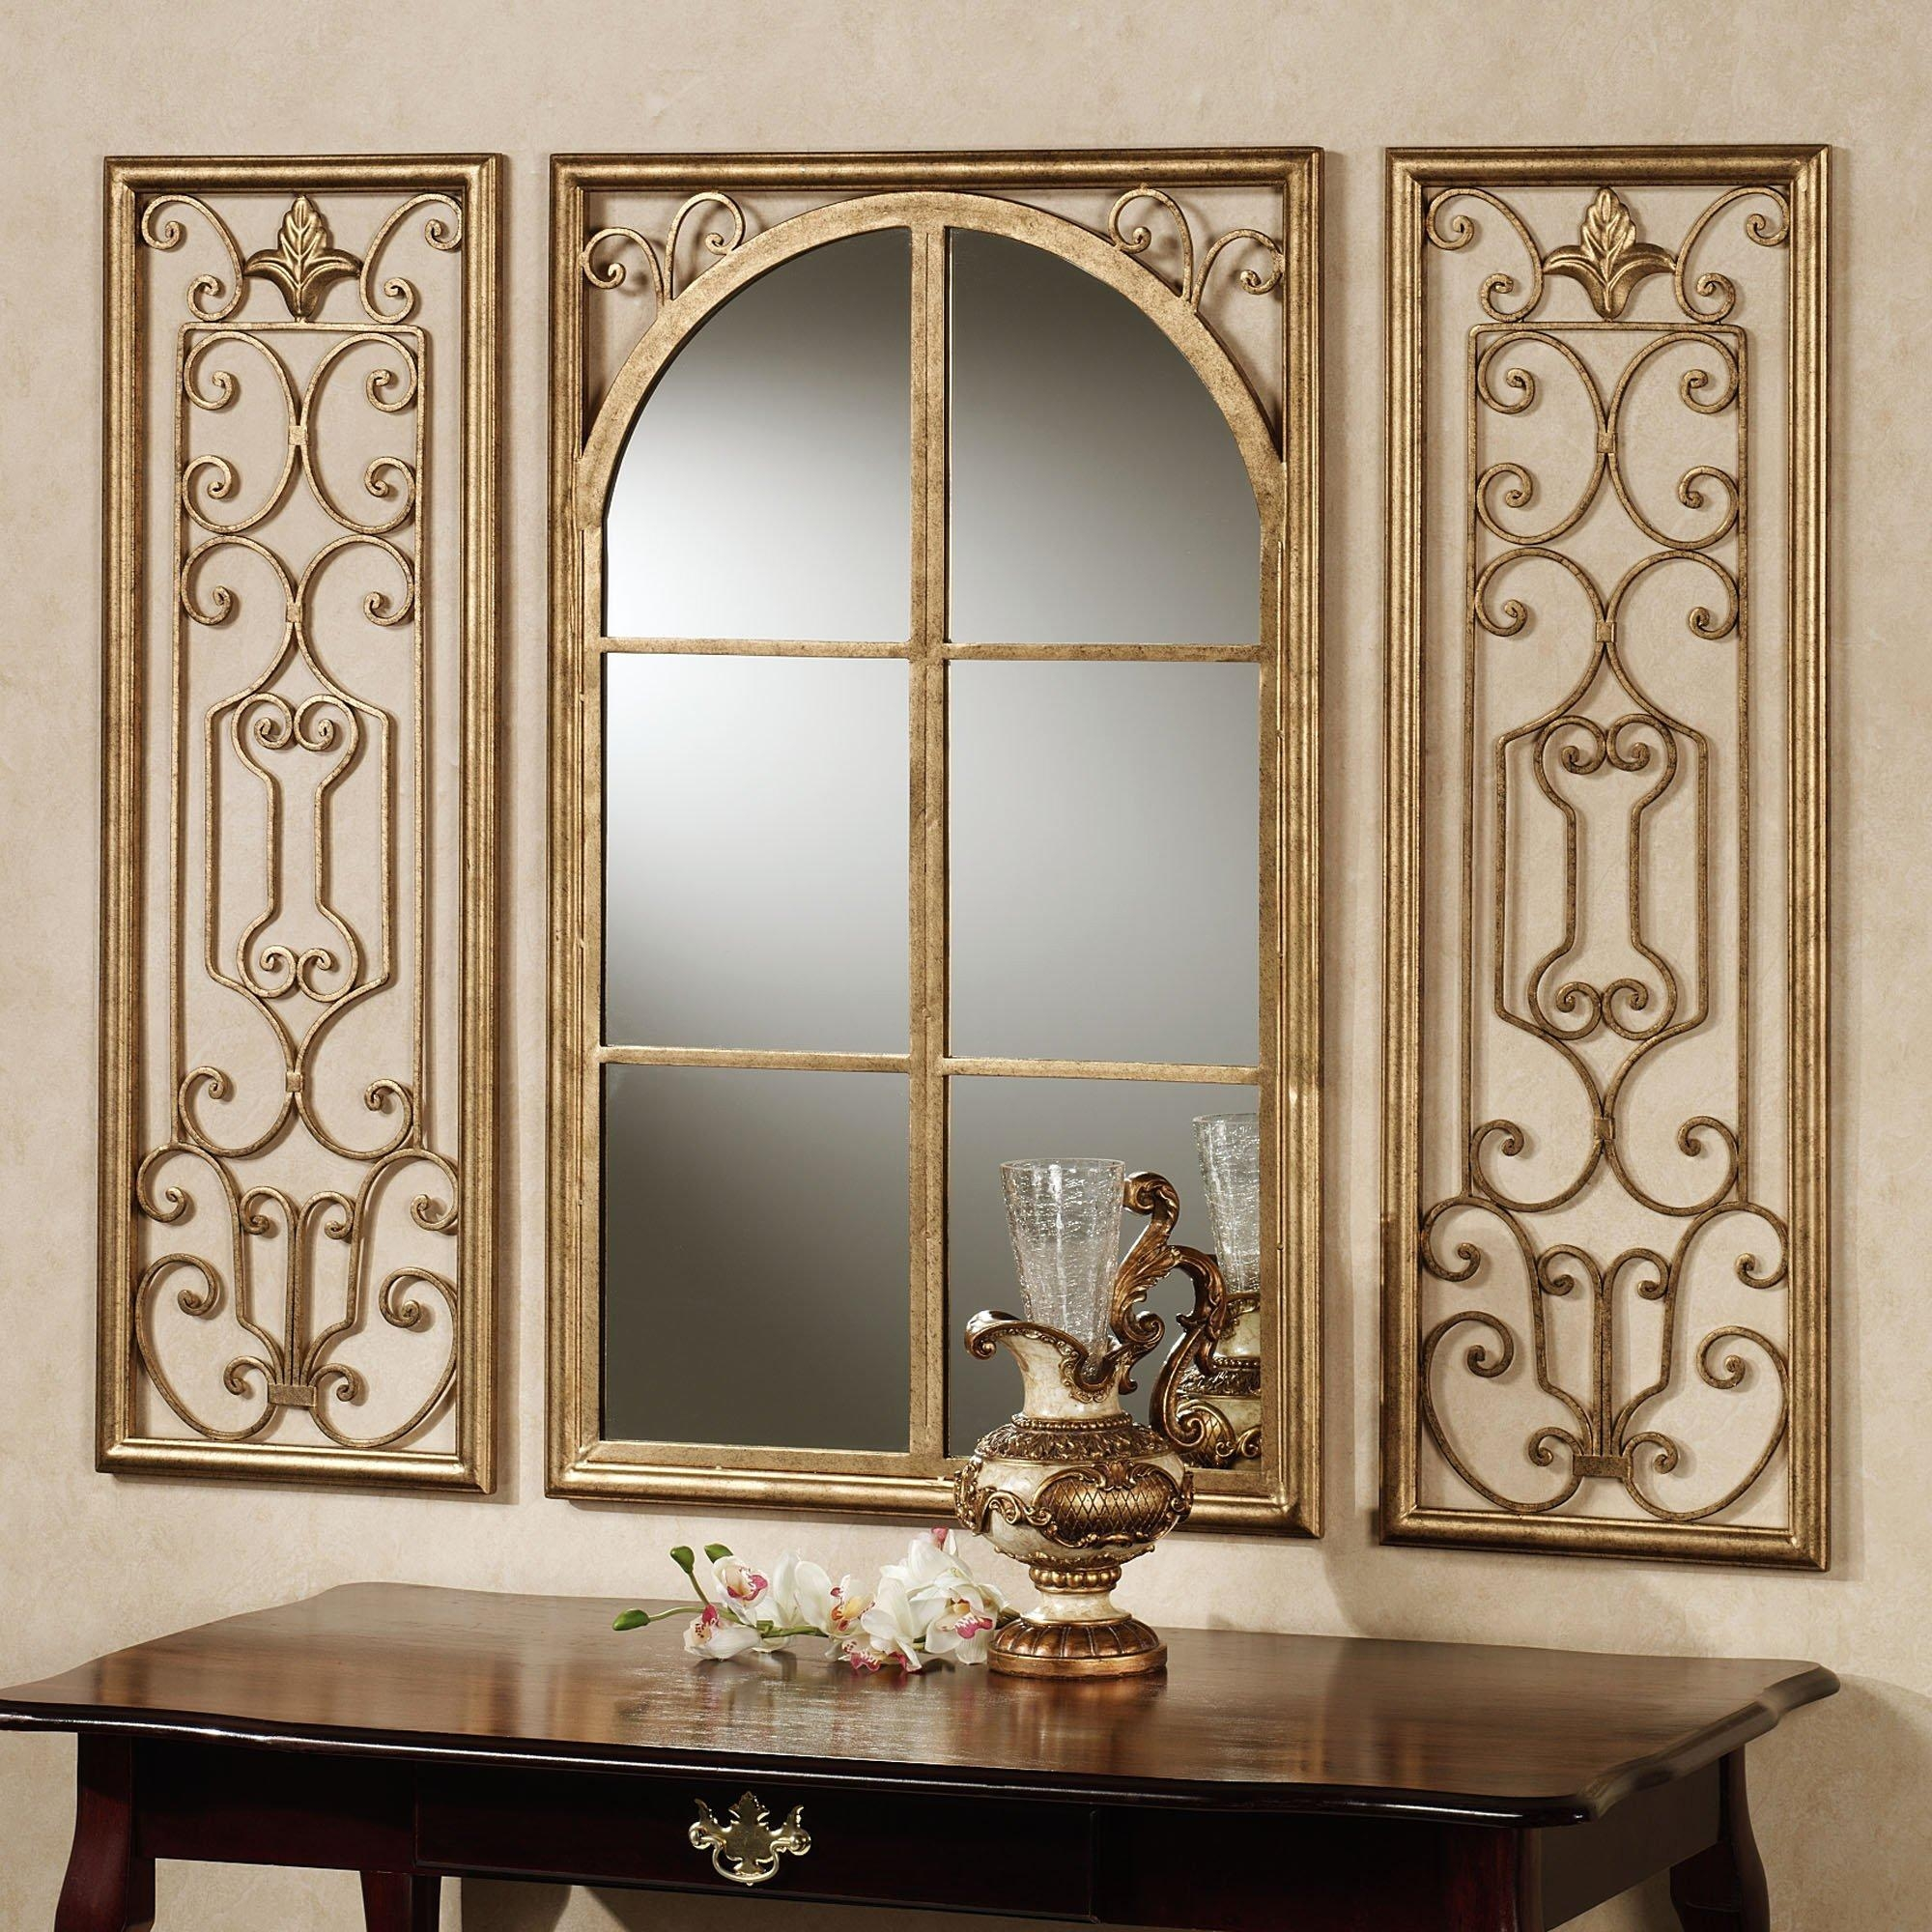 Home Decorative Design 20 Inspirations Fancy Wall Mirrors For Sale Mirror Ideas